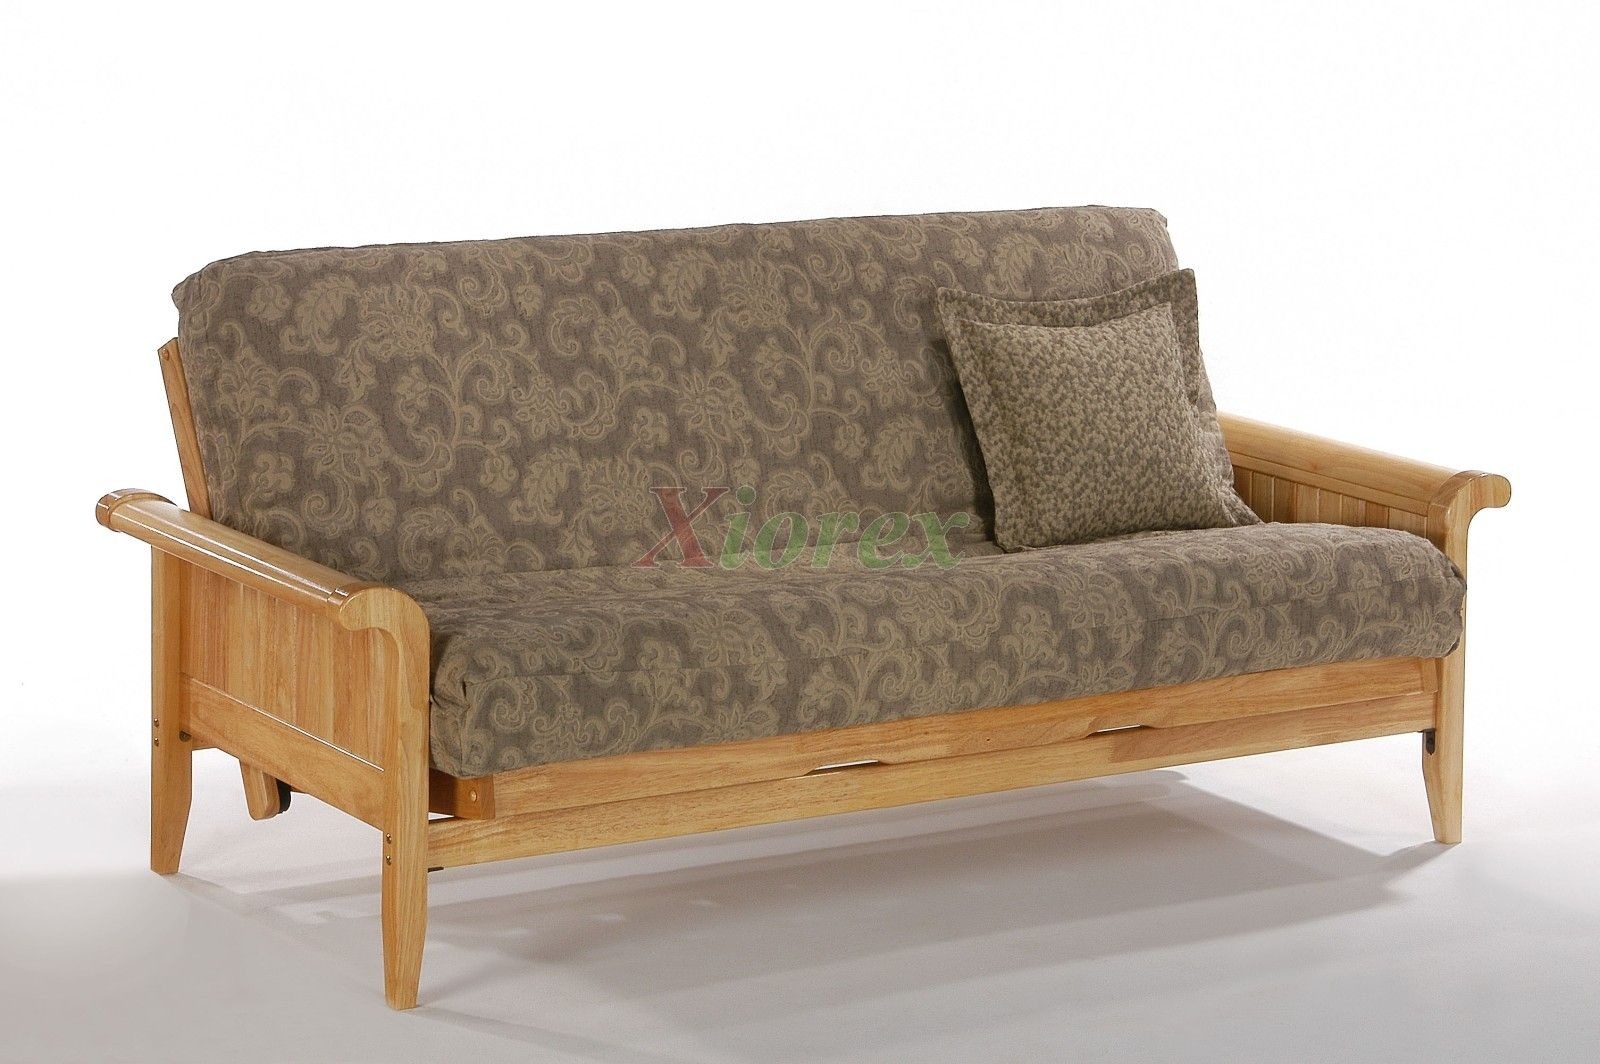 sleigh arm futon design night and day venice futon natural   xiorex night and day venice sleigh arm futon design night and day venice futon natural      rh   pinterest